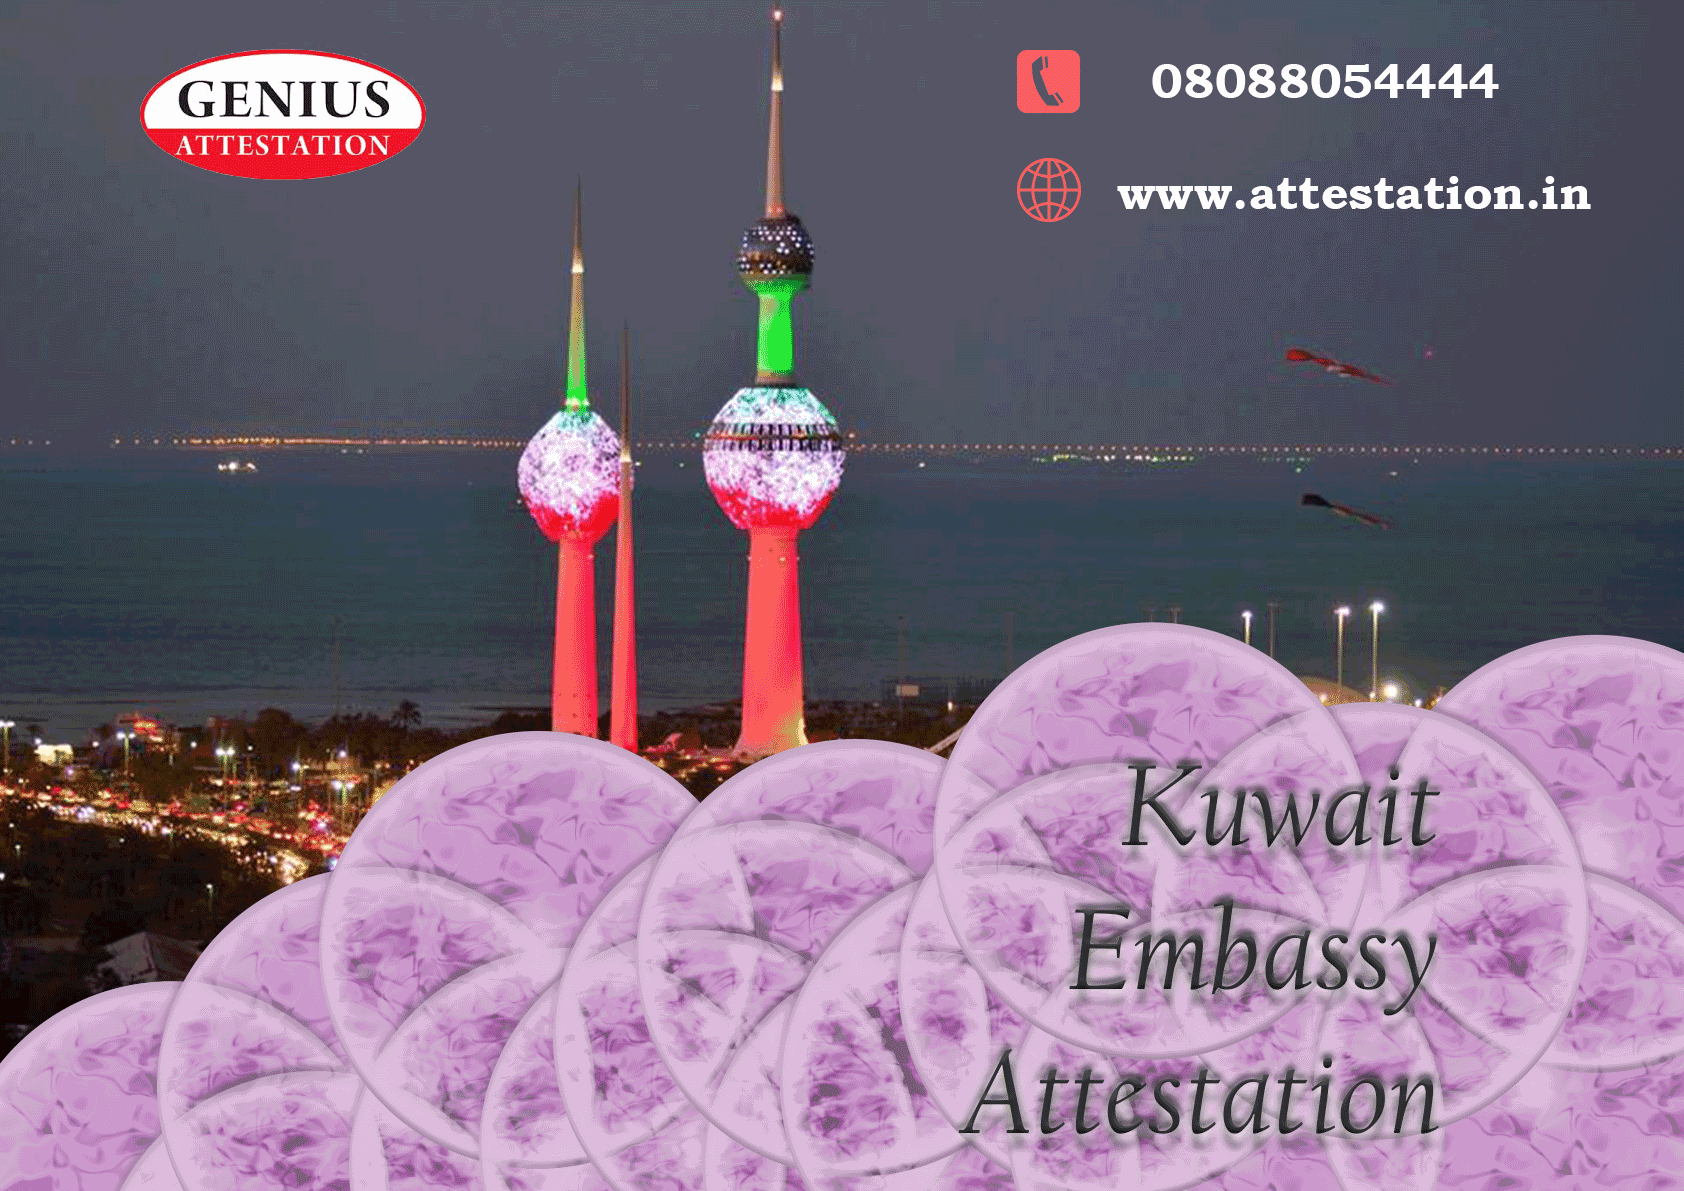 What is the procedure for Kuwait Embassy Attestation?